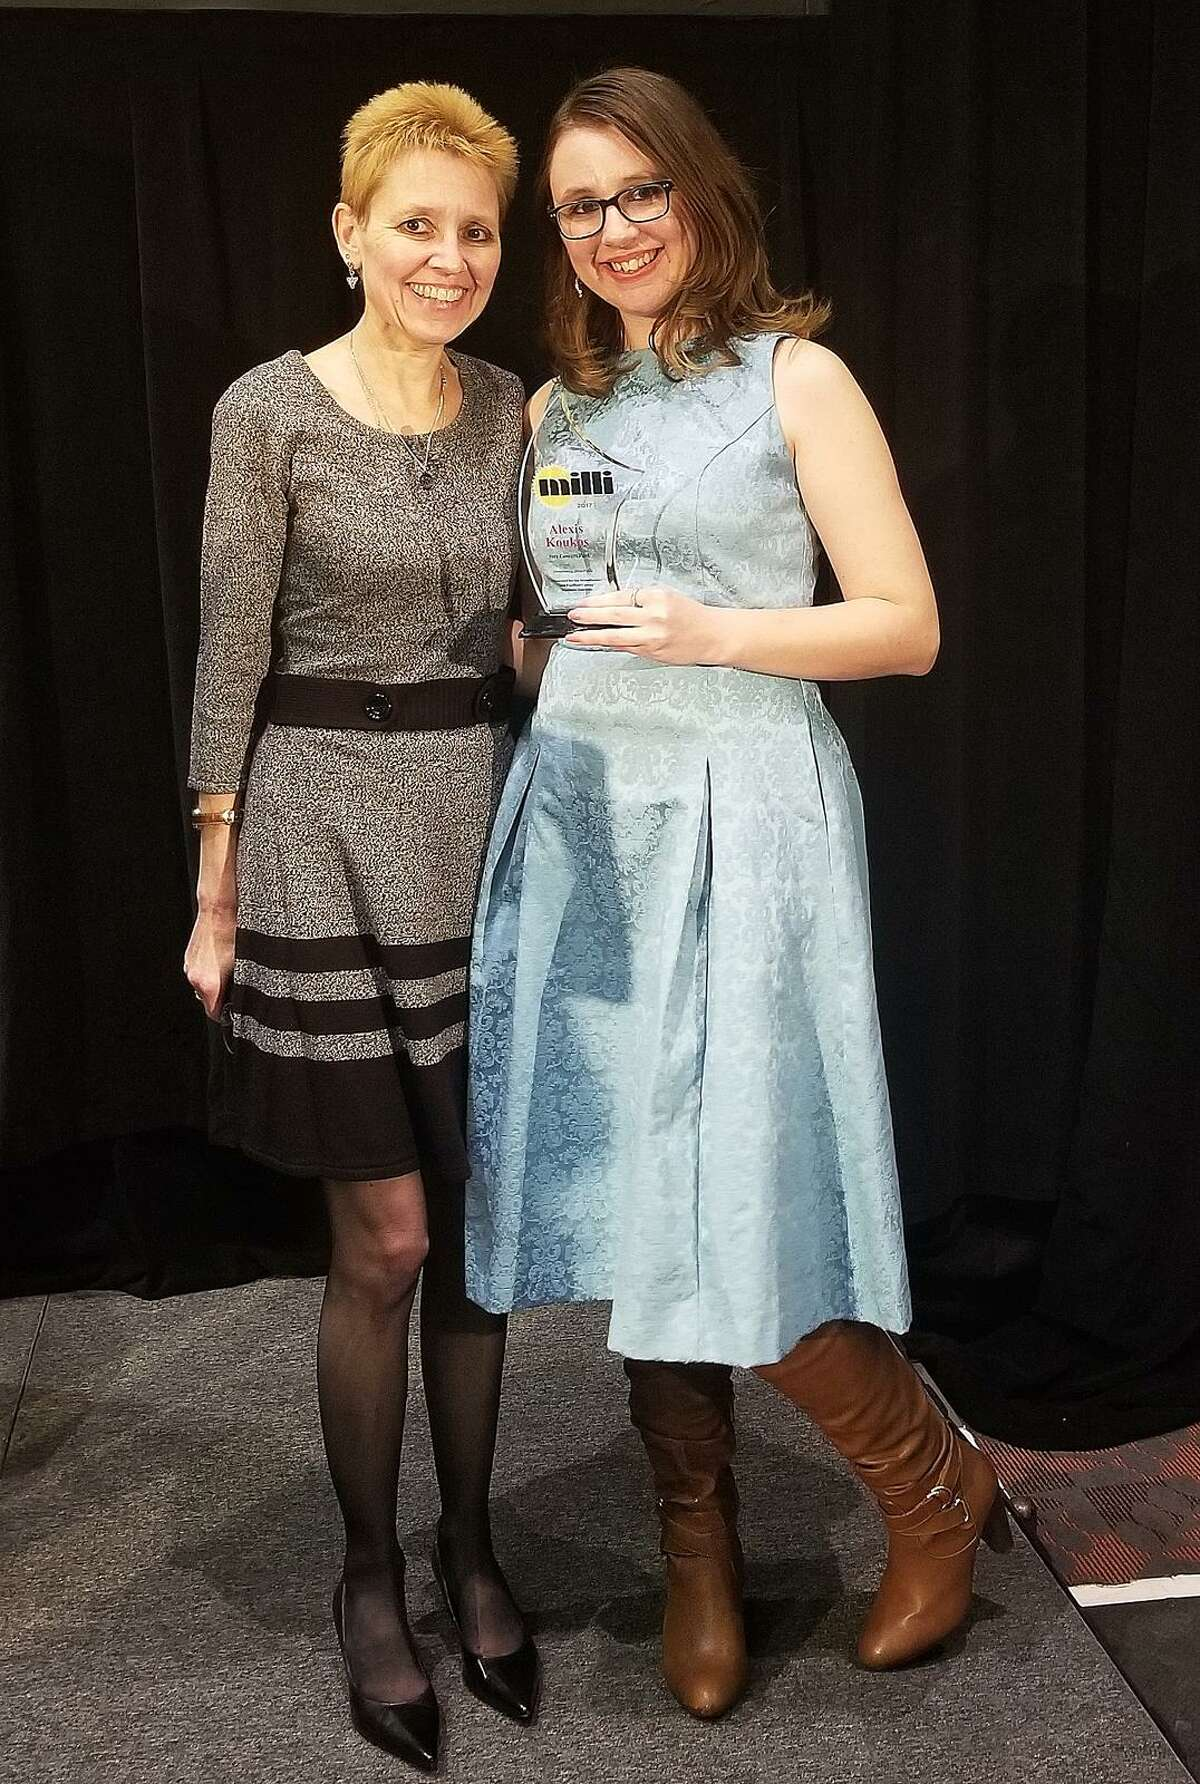 Alexis Koukos stands with her mother Pamela Brown as she accepts a Millennial Award from Westfair Communications on Nov. 14, 2017, in White Plains, N.Y.